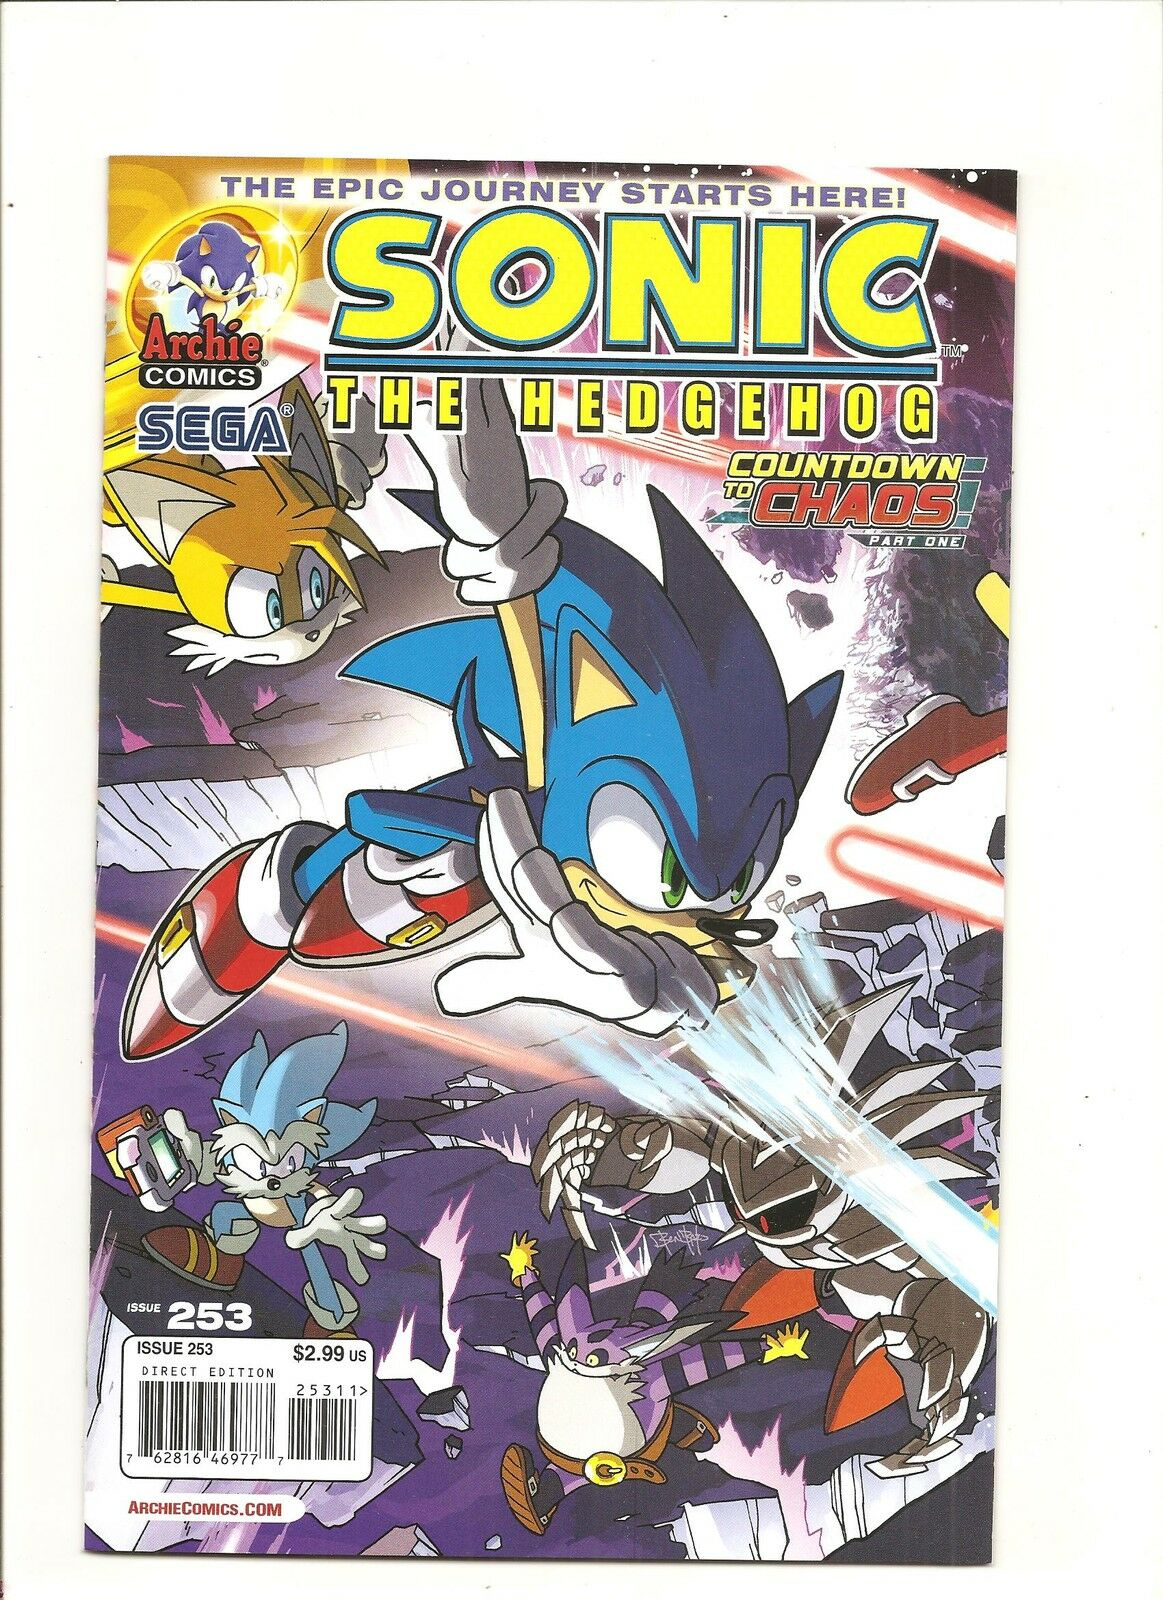 Archie Comics Sonic The Hedgehog 253 Countdown to Chaos Part 1 NM M